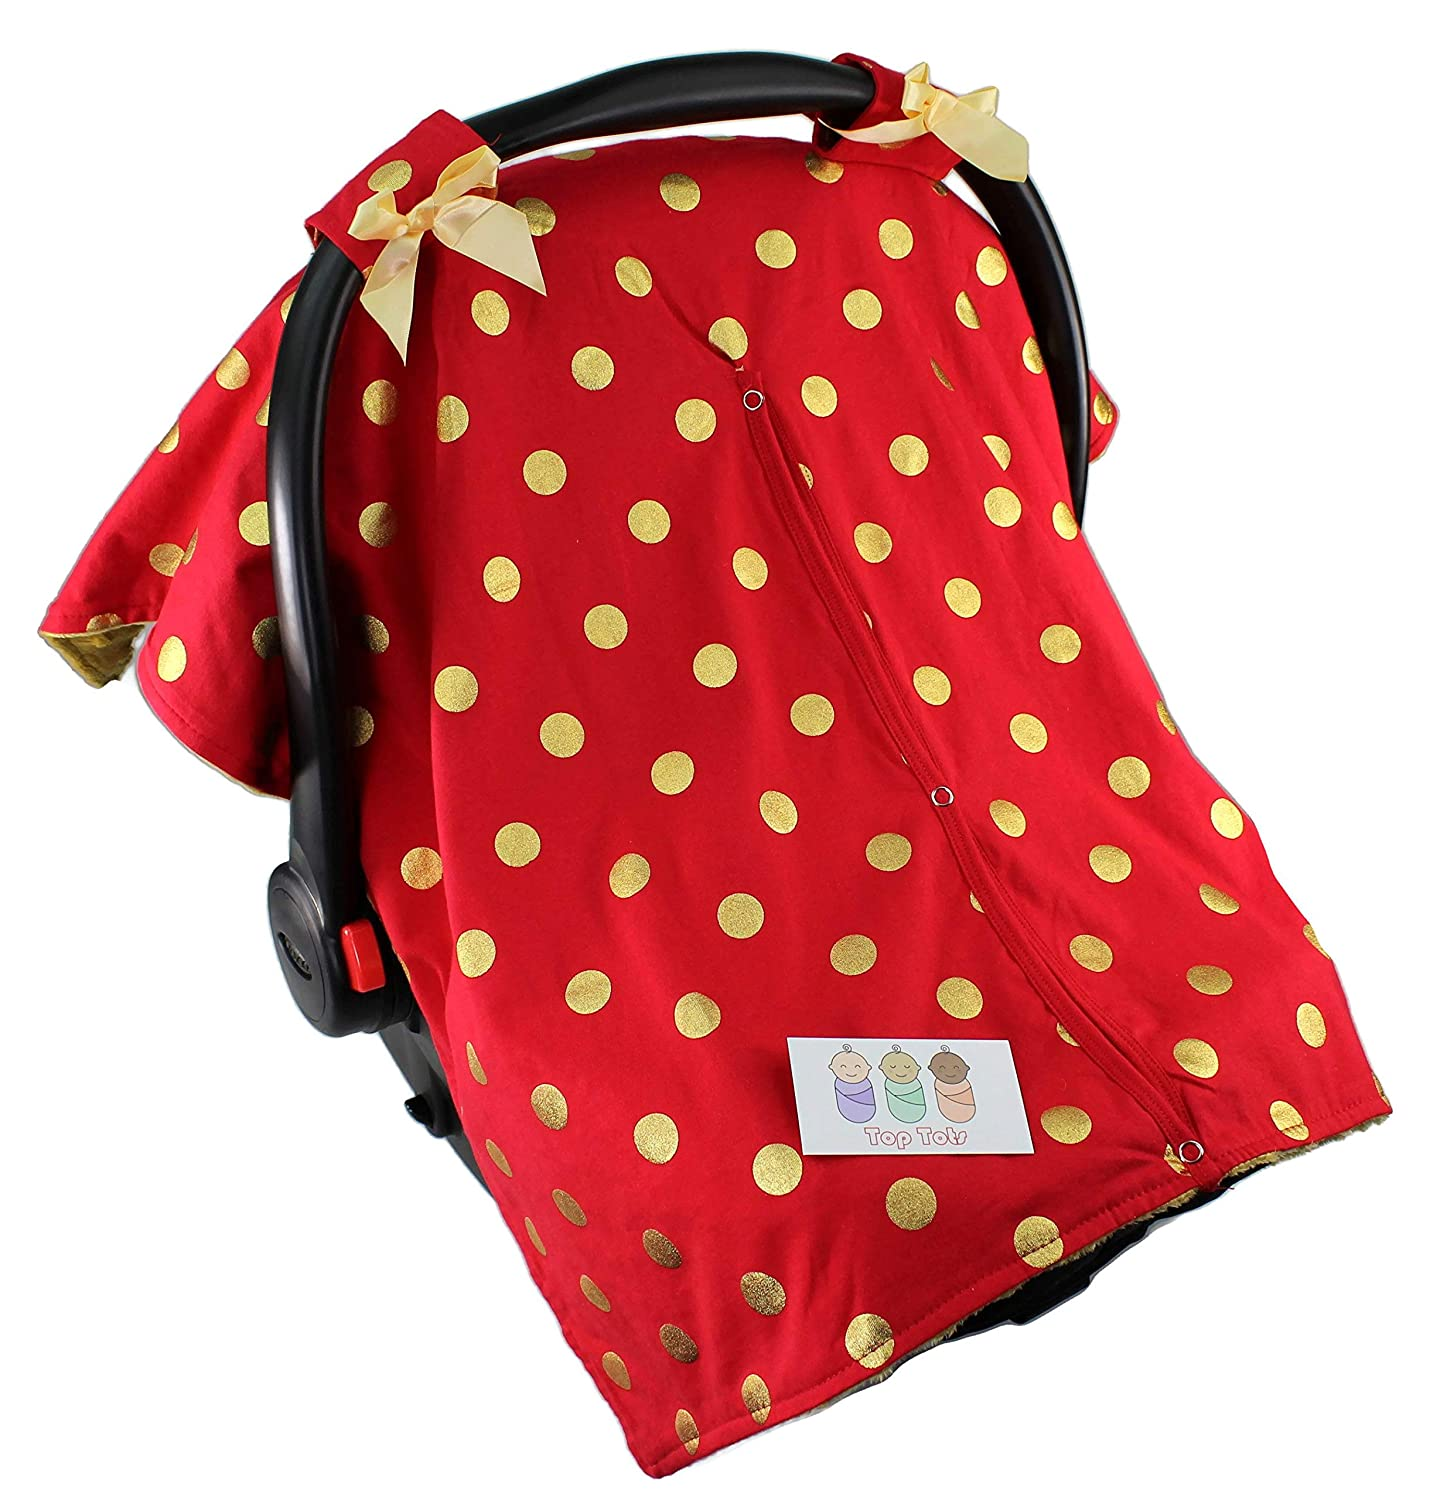 Top Tots Standard Baby Car Seat Canopy Cover, Polka Dots, Minky Dot,Red Gold, Includes 1 Year Warranty